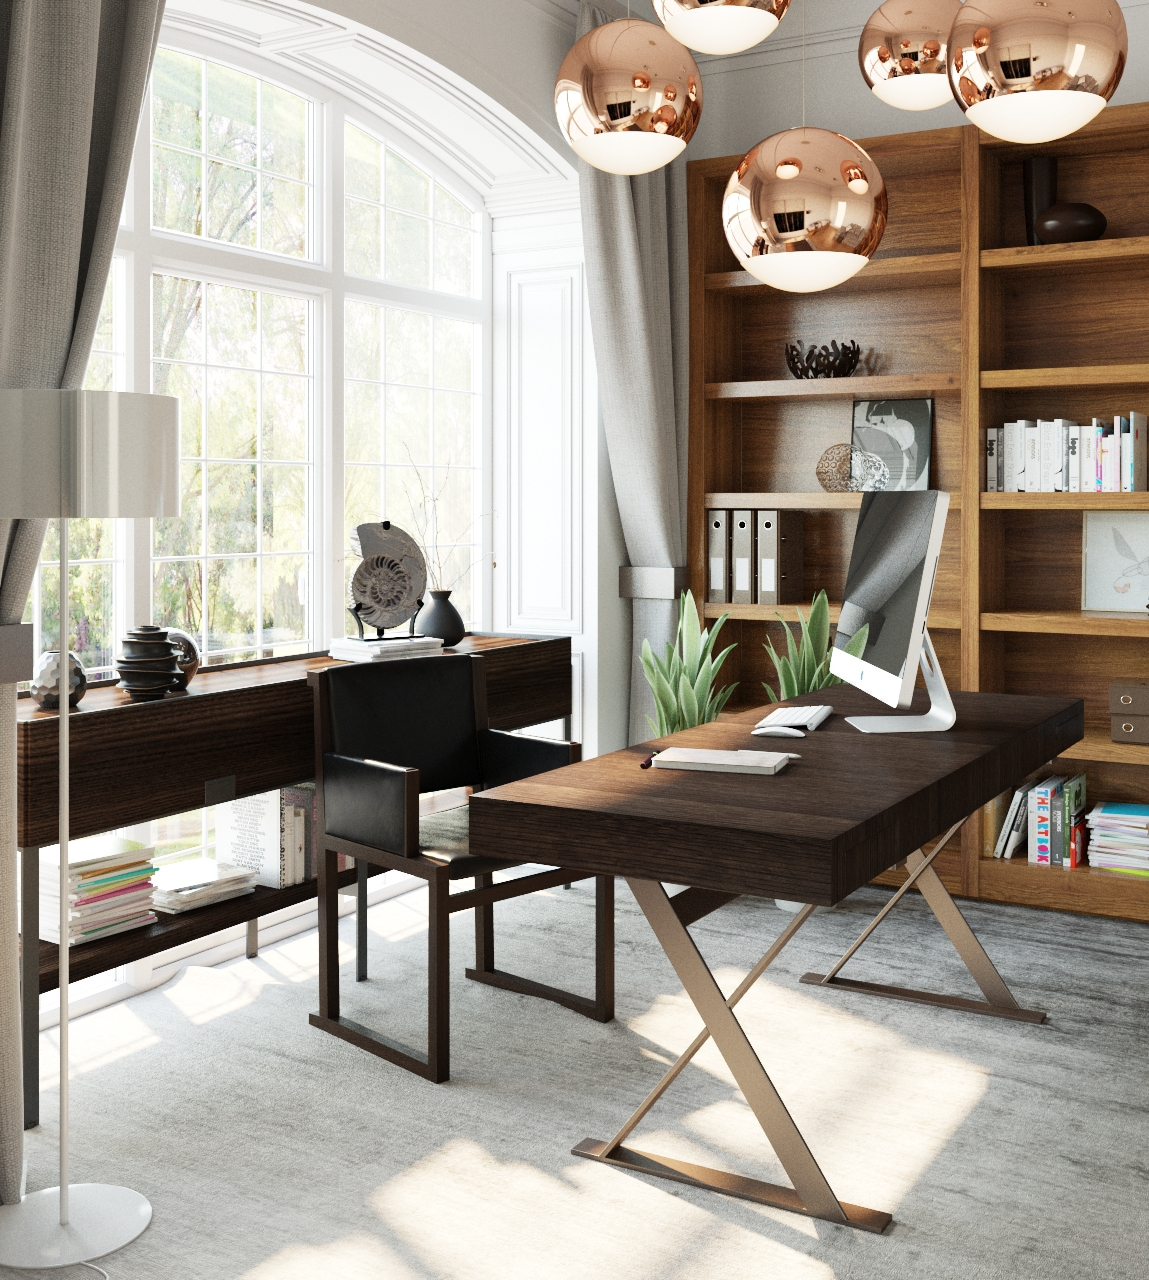 24 Luxury And Modern Home Office Designs: 35 Modern Home Office Design Ideas